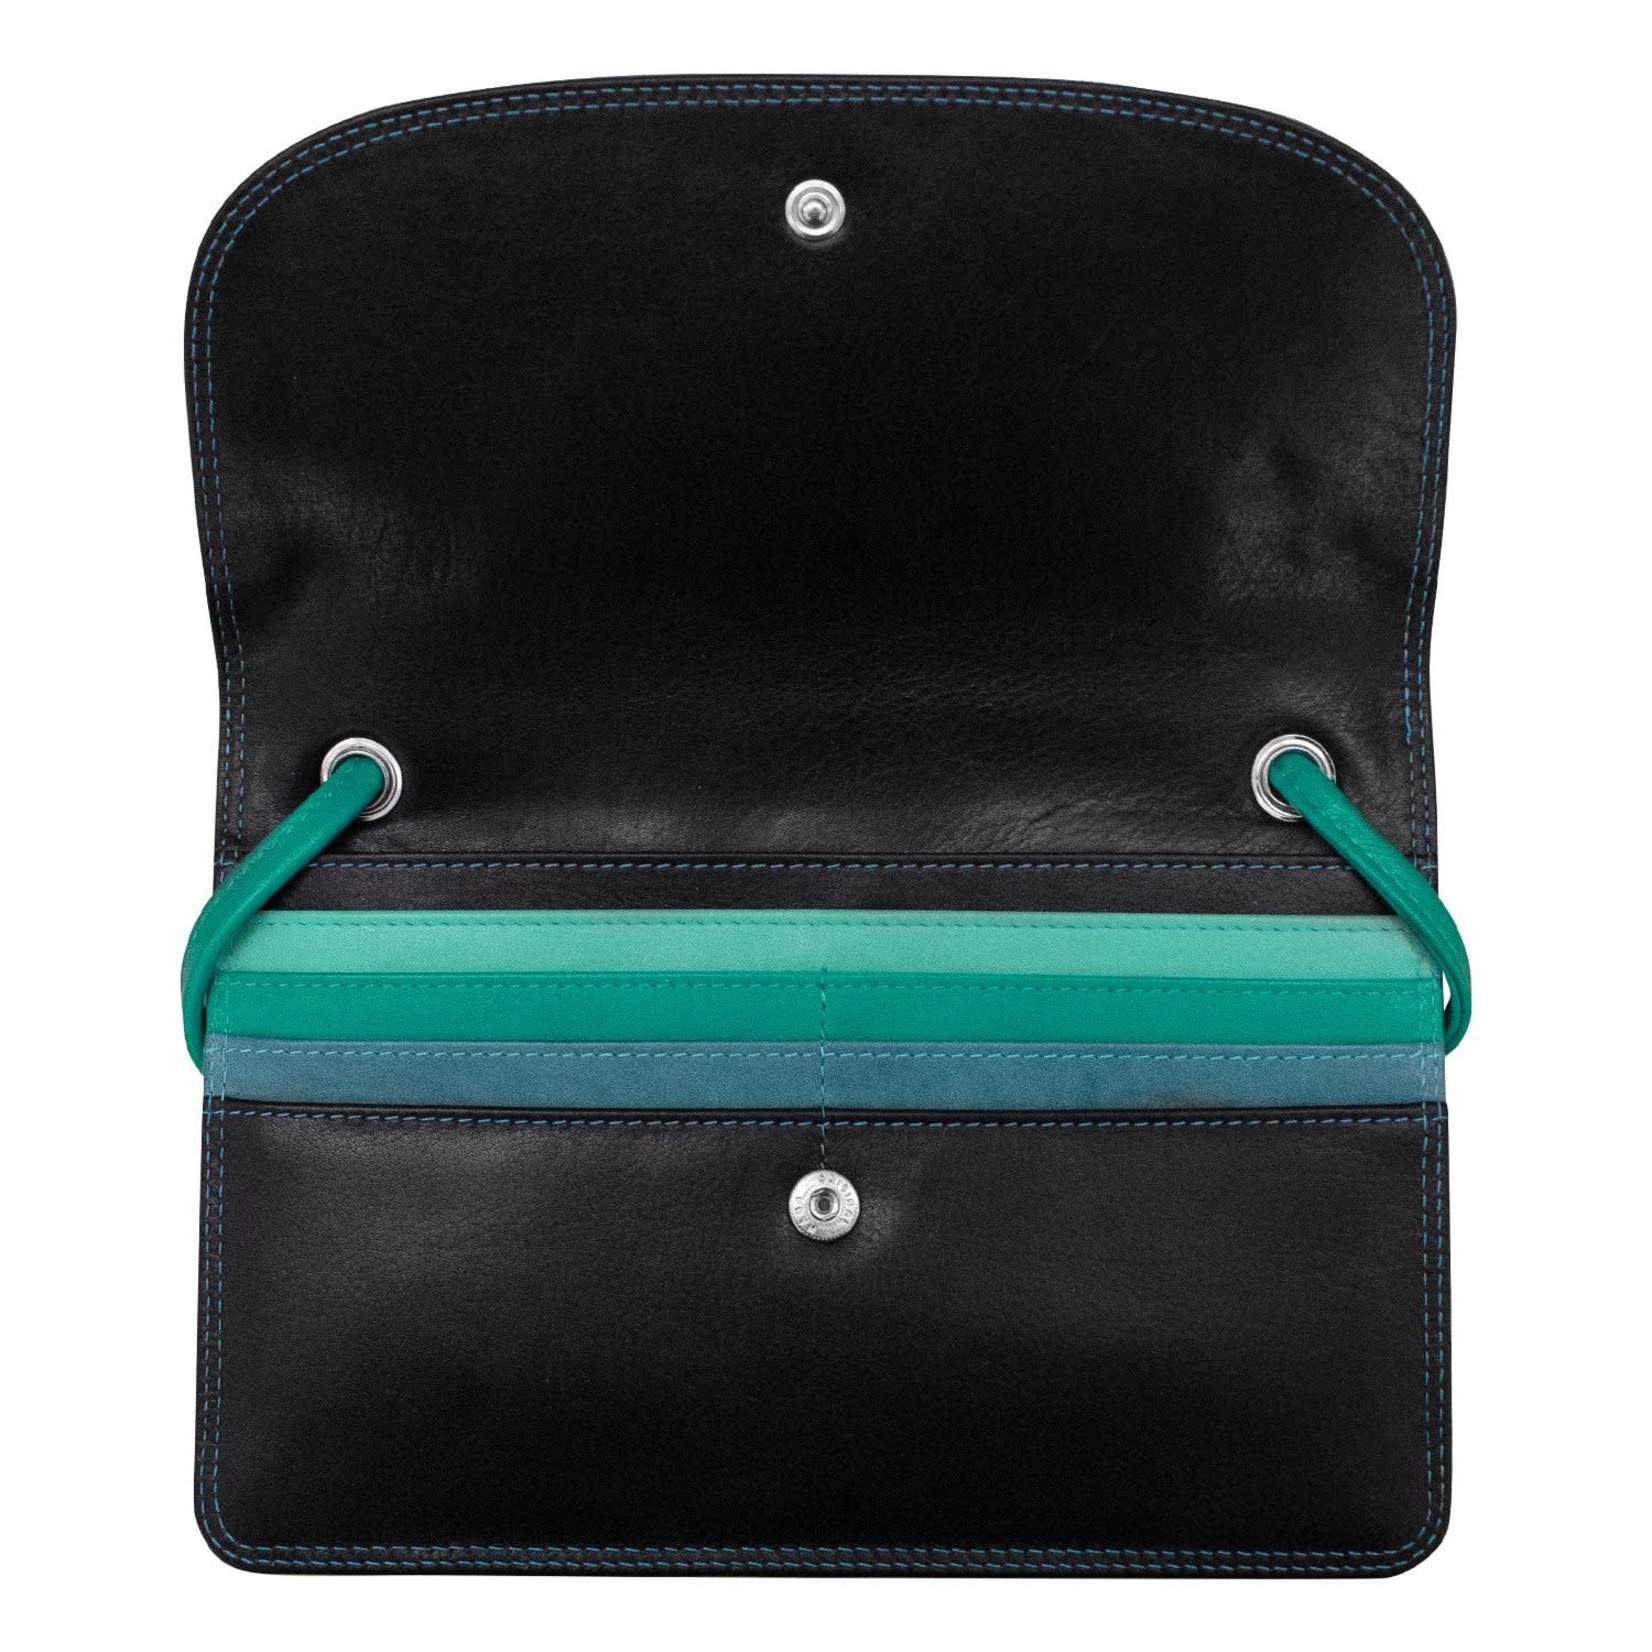 Leather Handbags and Accessories 6181 Midnight - RFID Slim Crossbody Wallet